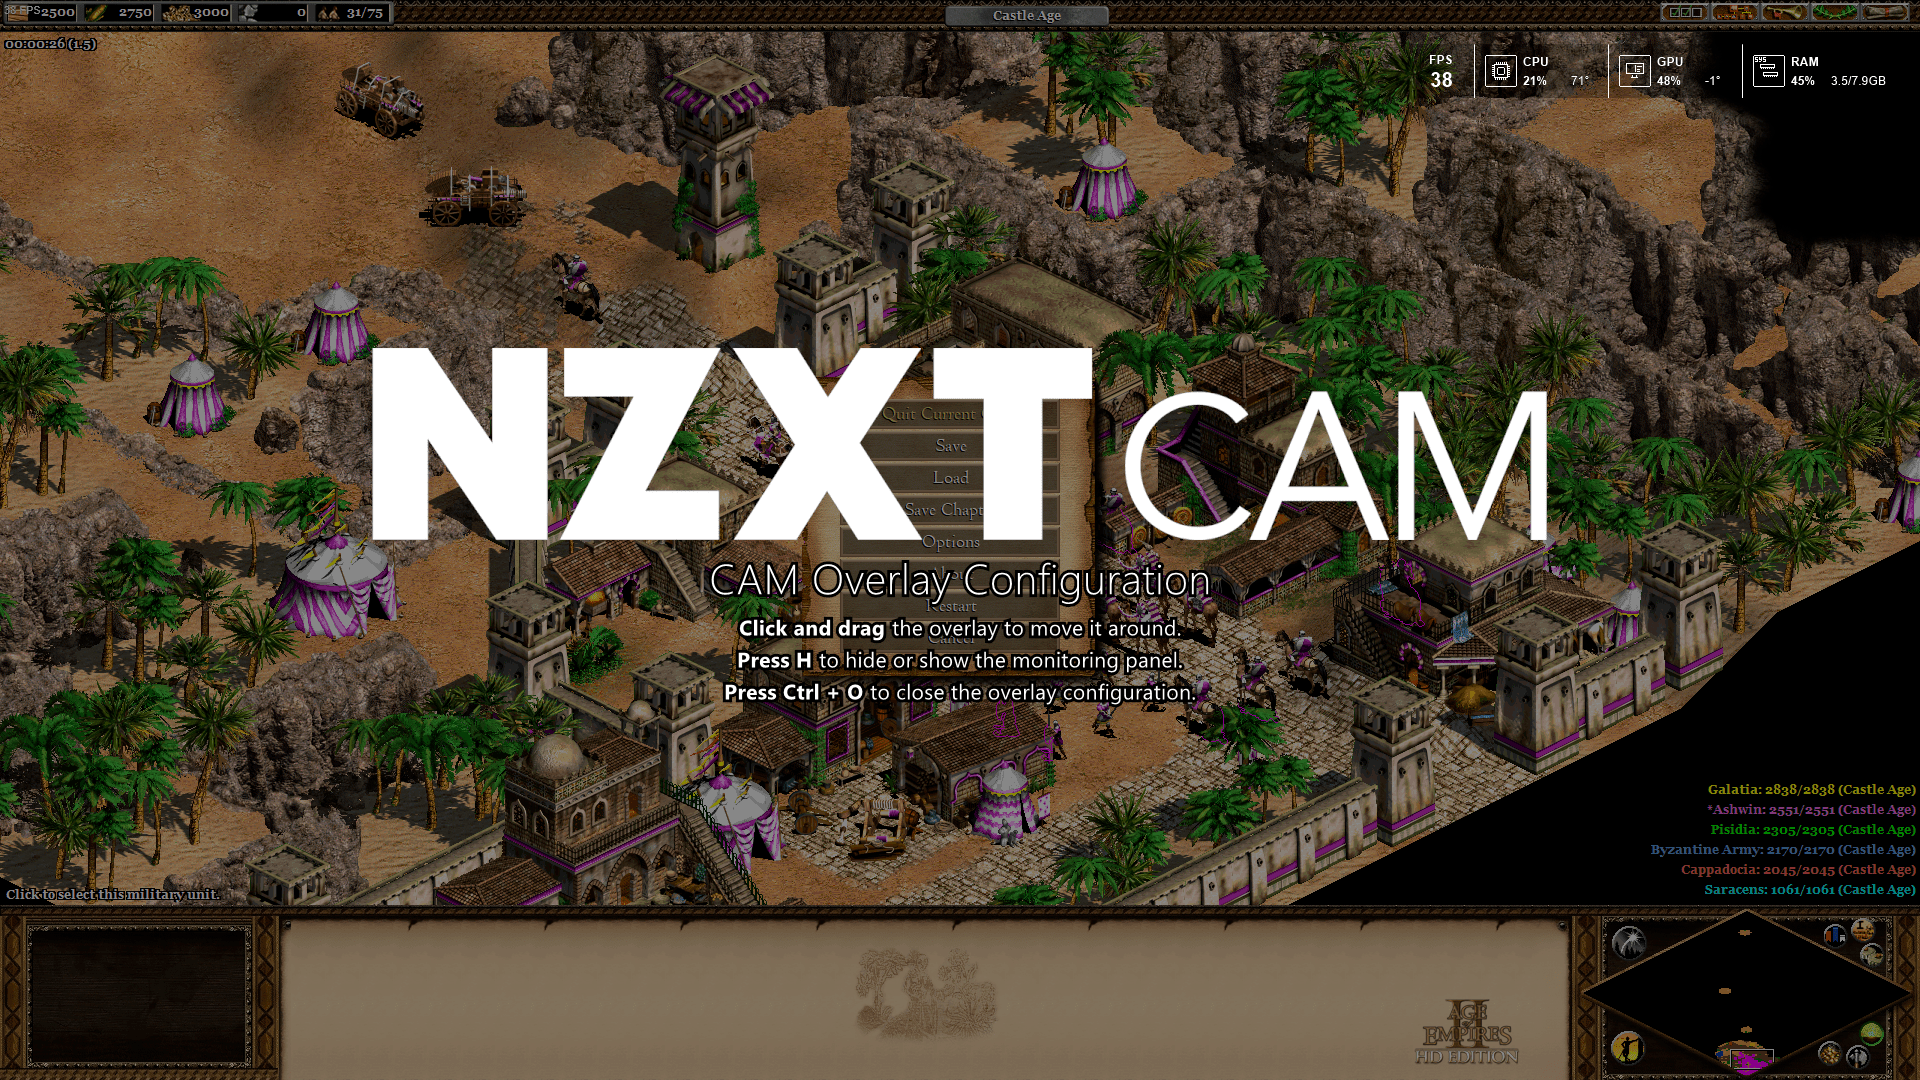 NZXT Cam overlay reposition